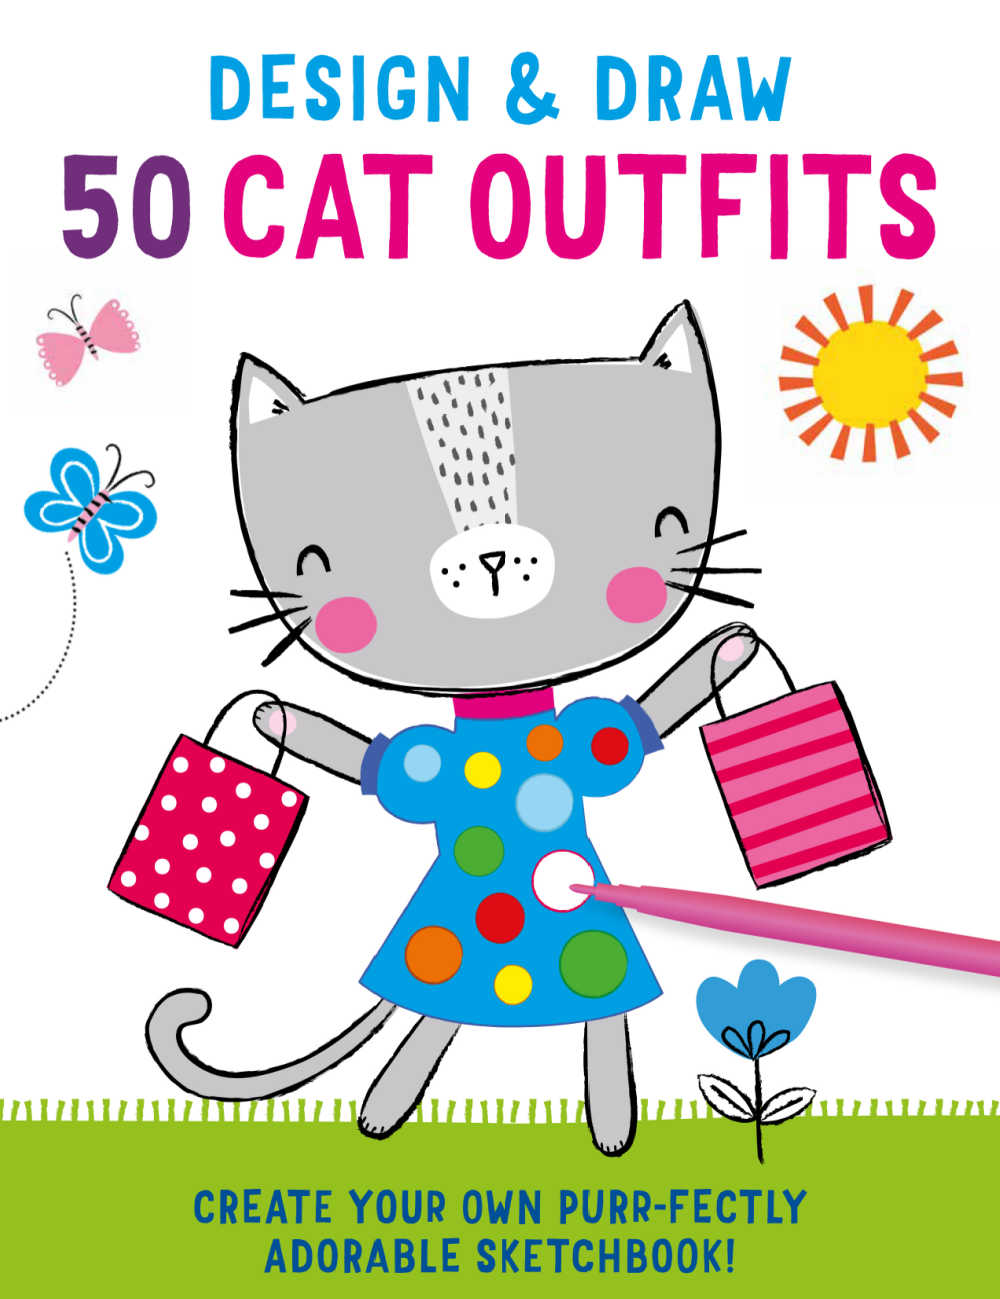 book - design and draw cat outfits.